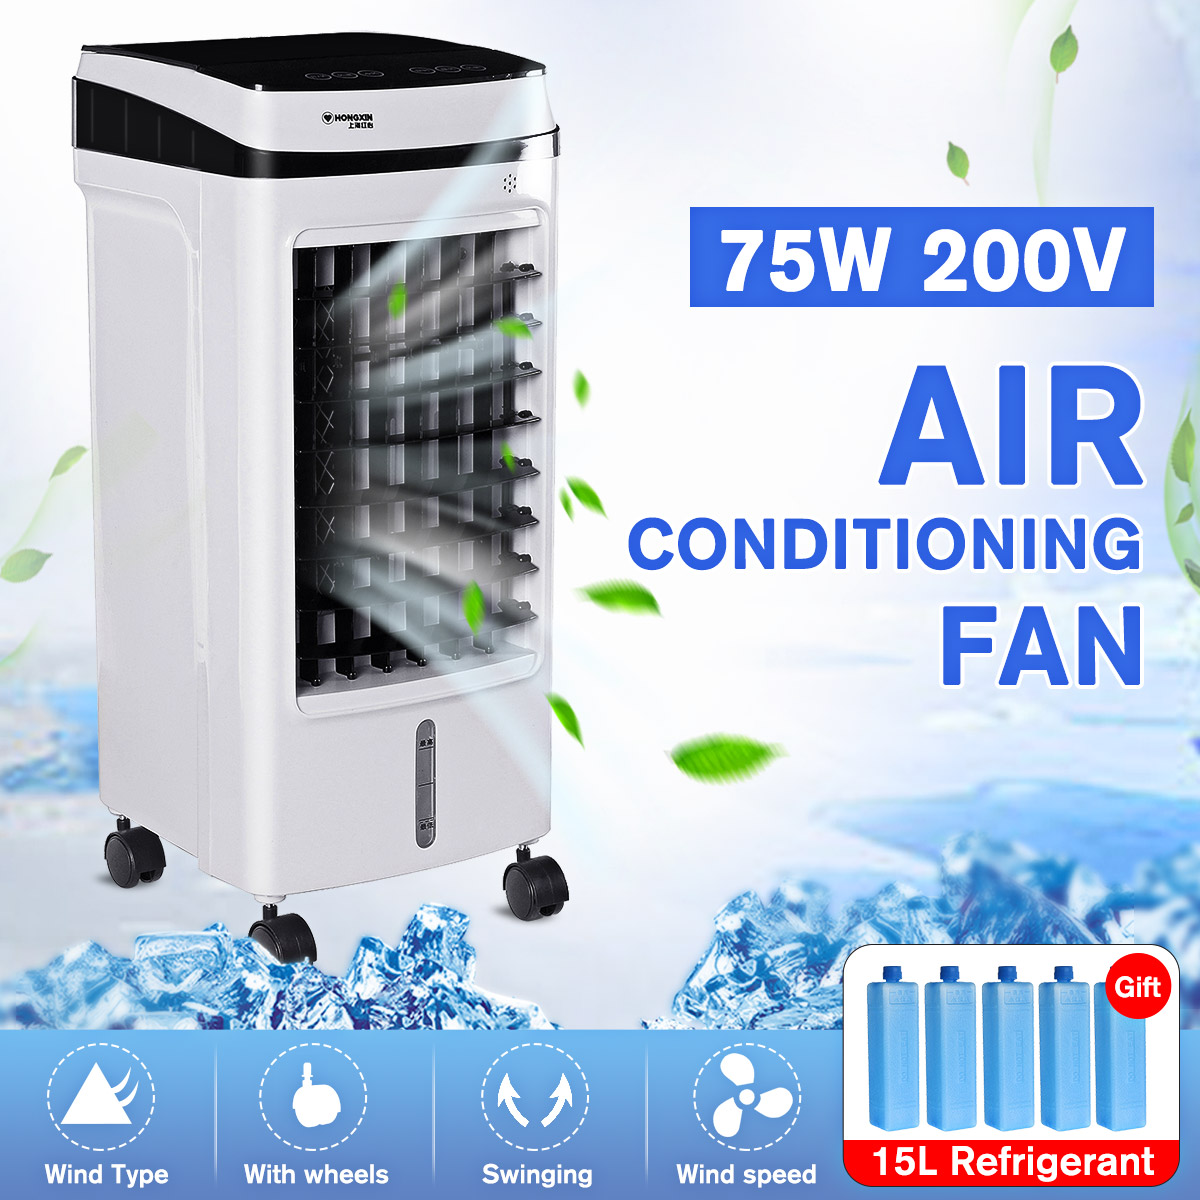 Home Mobile Air Conditioning Fan Portable <font><b>15L</b></font> <font><b>Tank</b></font> Humidifier Cooler 3 Fan Modes Sleep Timer 220V 75W Bedroom Living Room office image